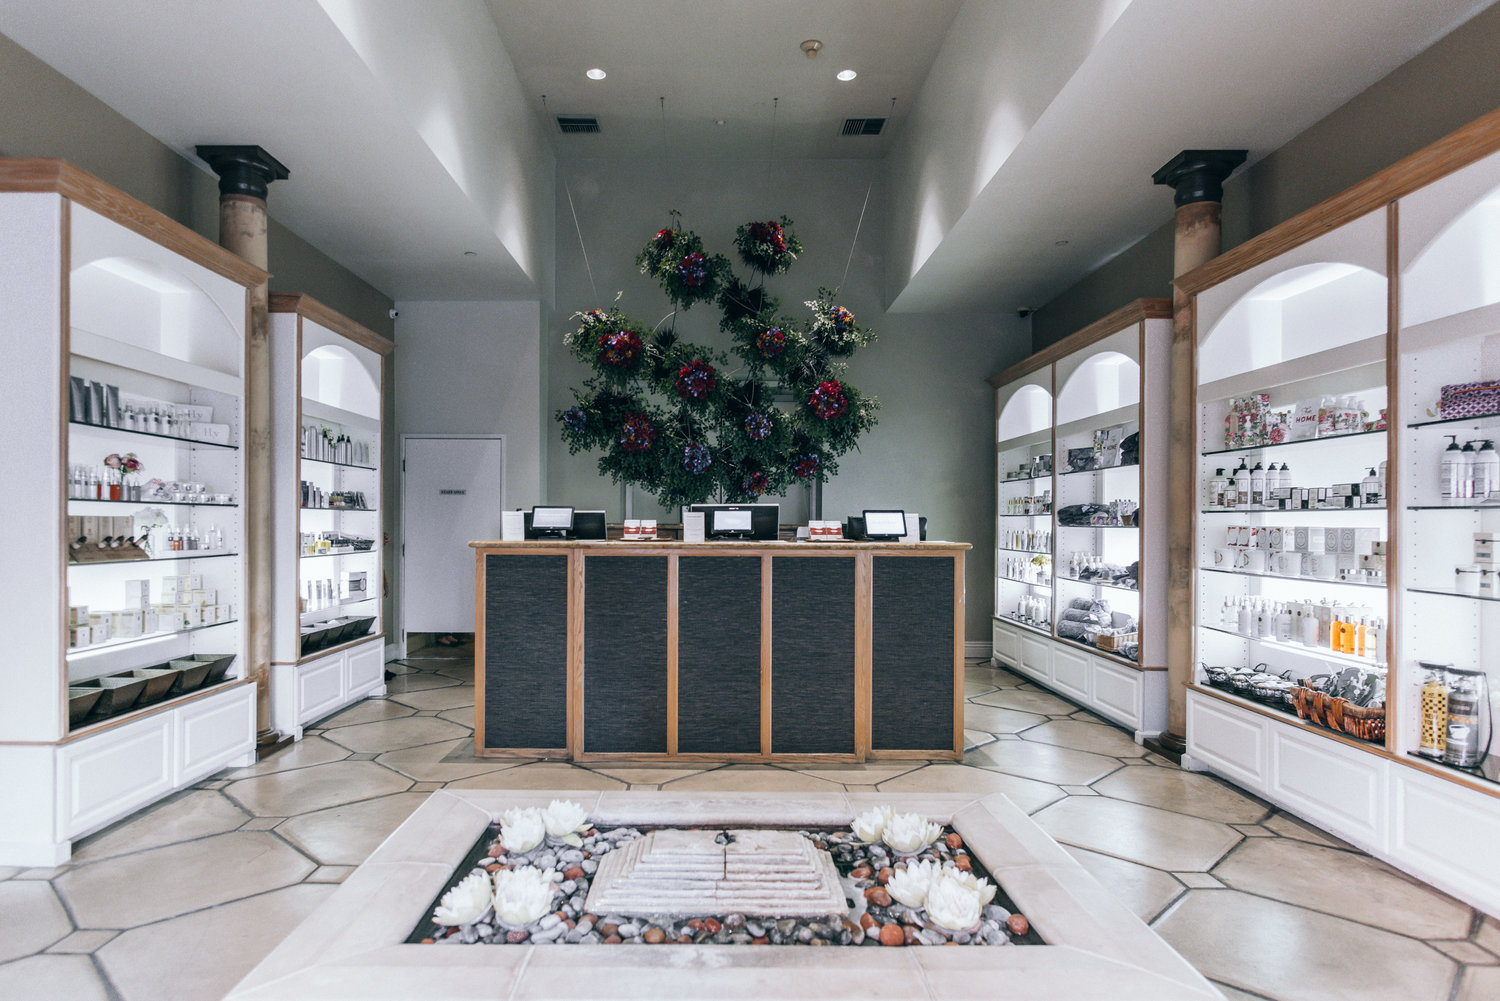 Burke Williams  One of Los Angeles's most elegant and reliable spa spots for massages, facials, manicures, pedicures and more